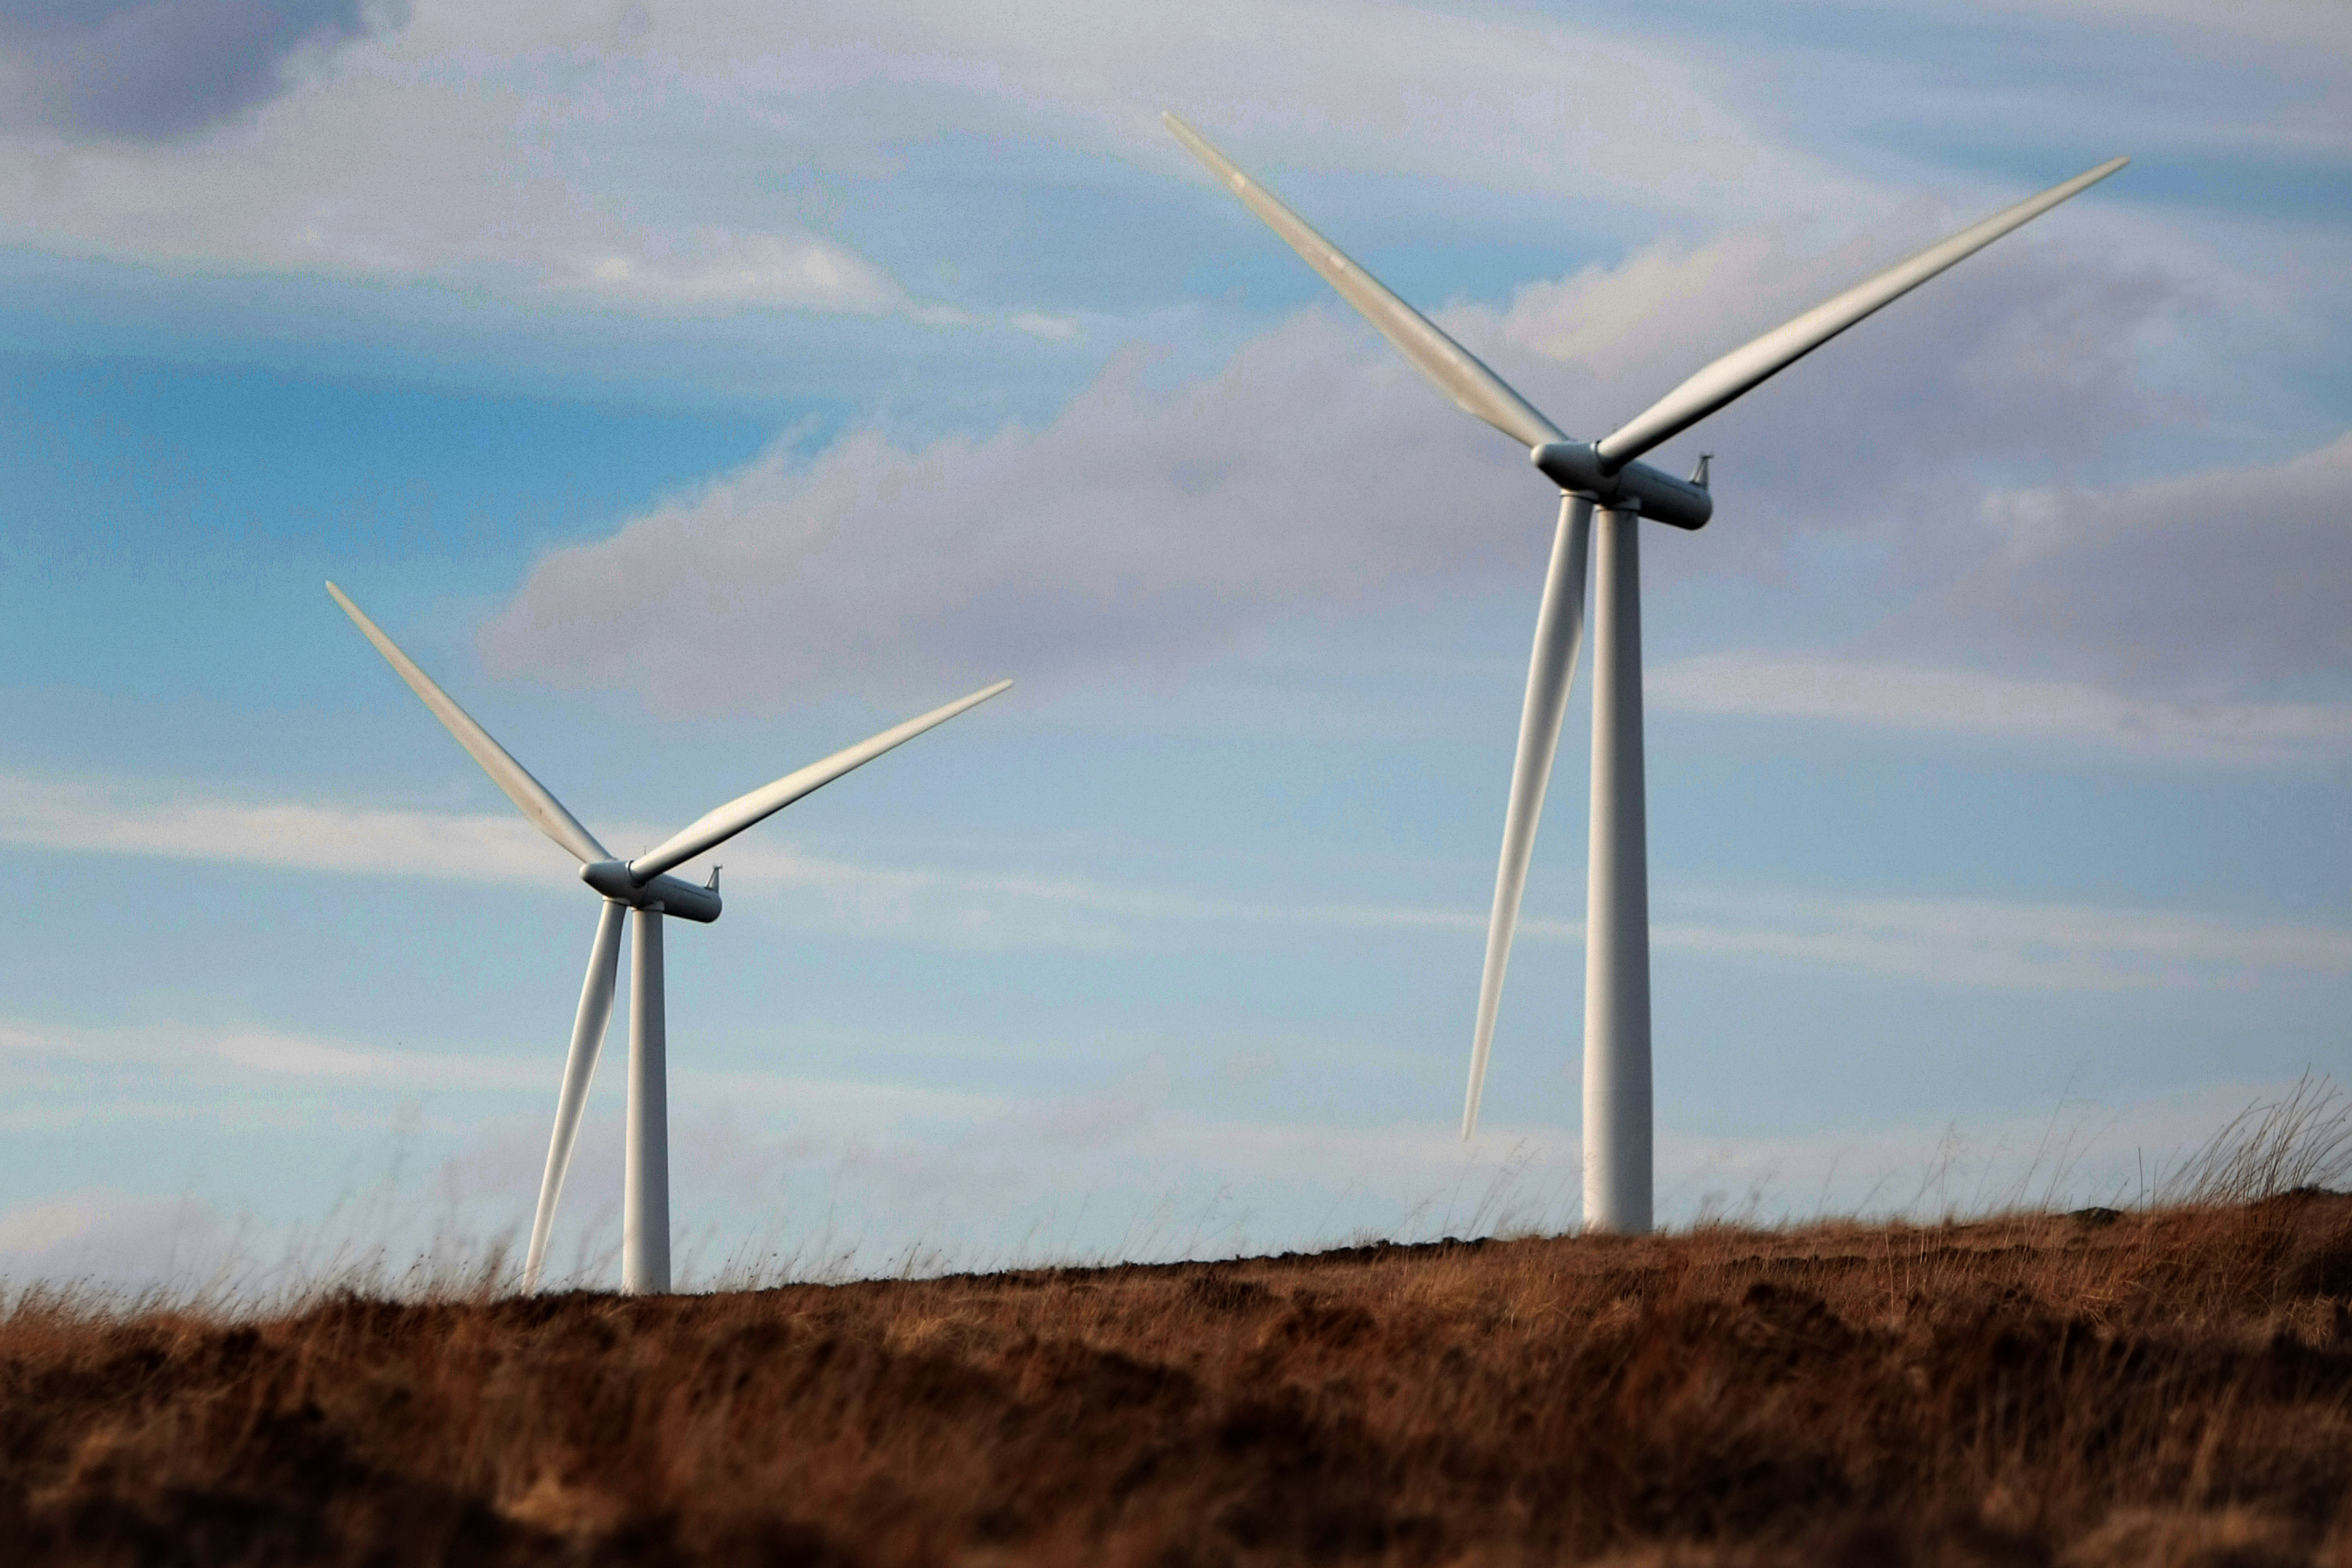 Drumderg wind farm which would be adjacent to the Green Burn development.